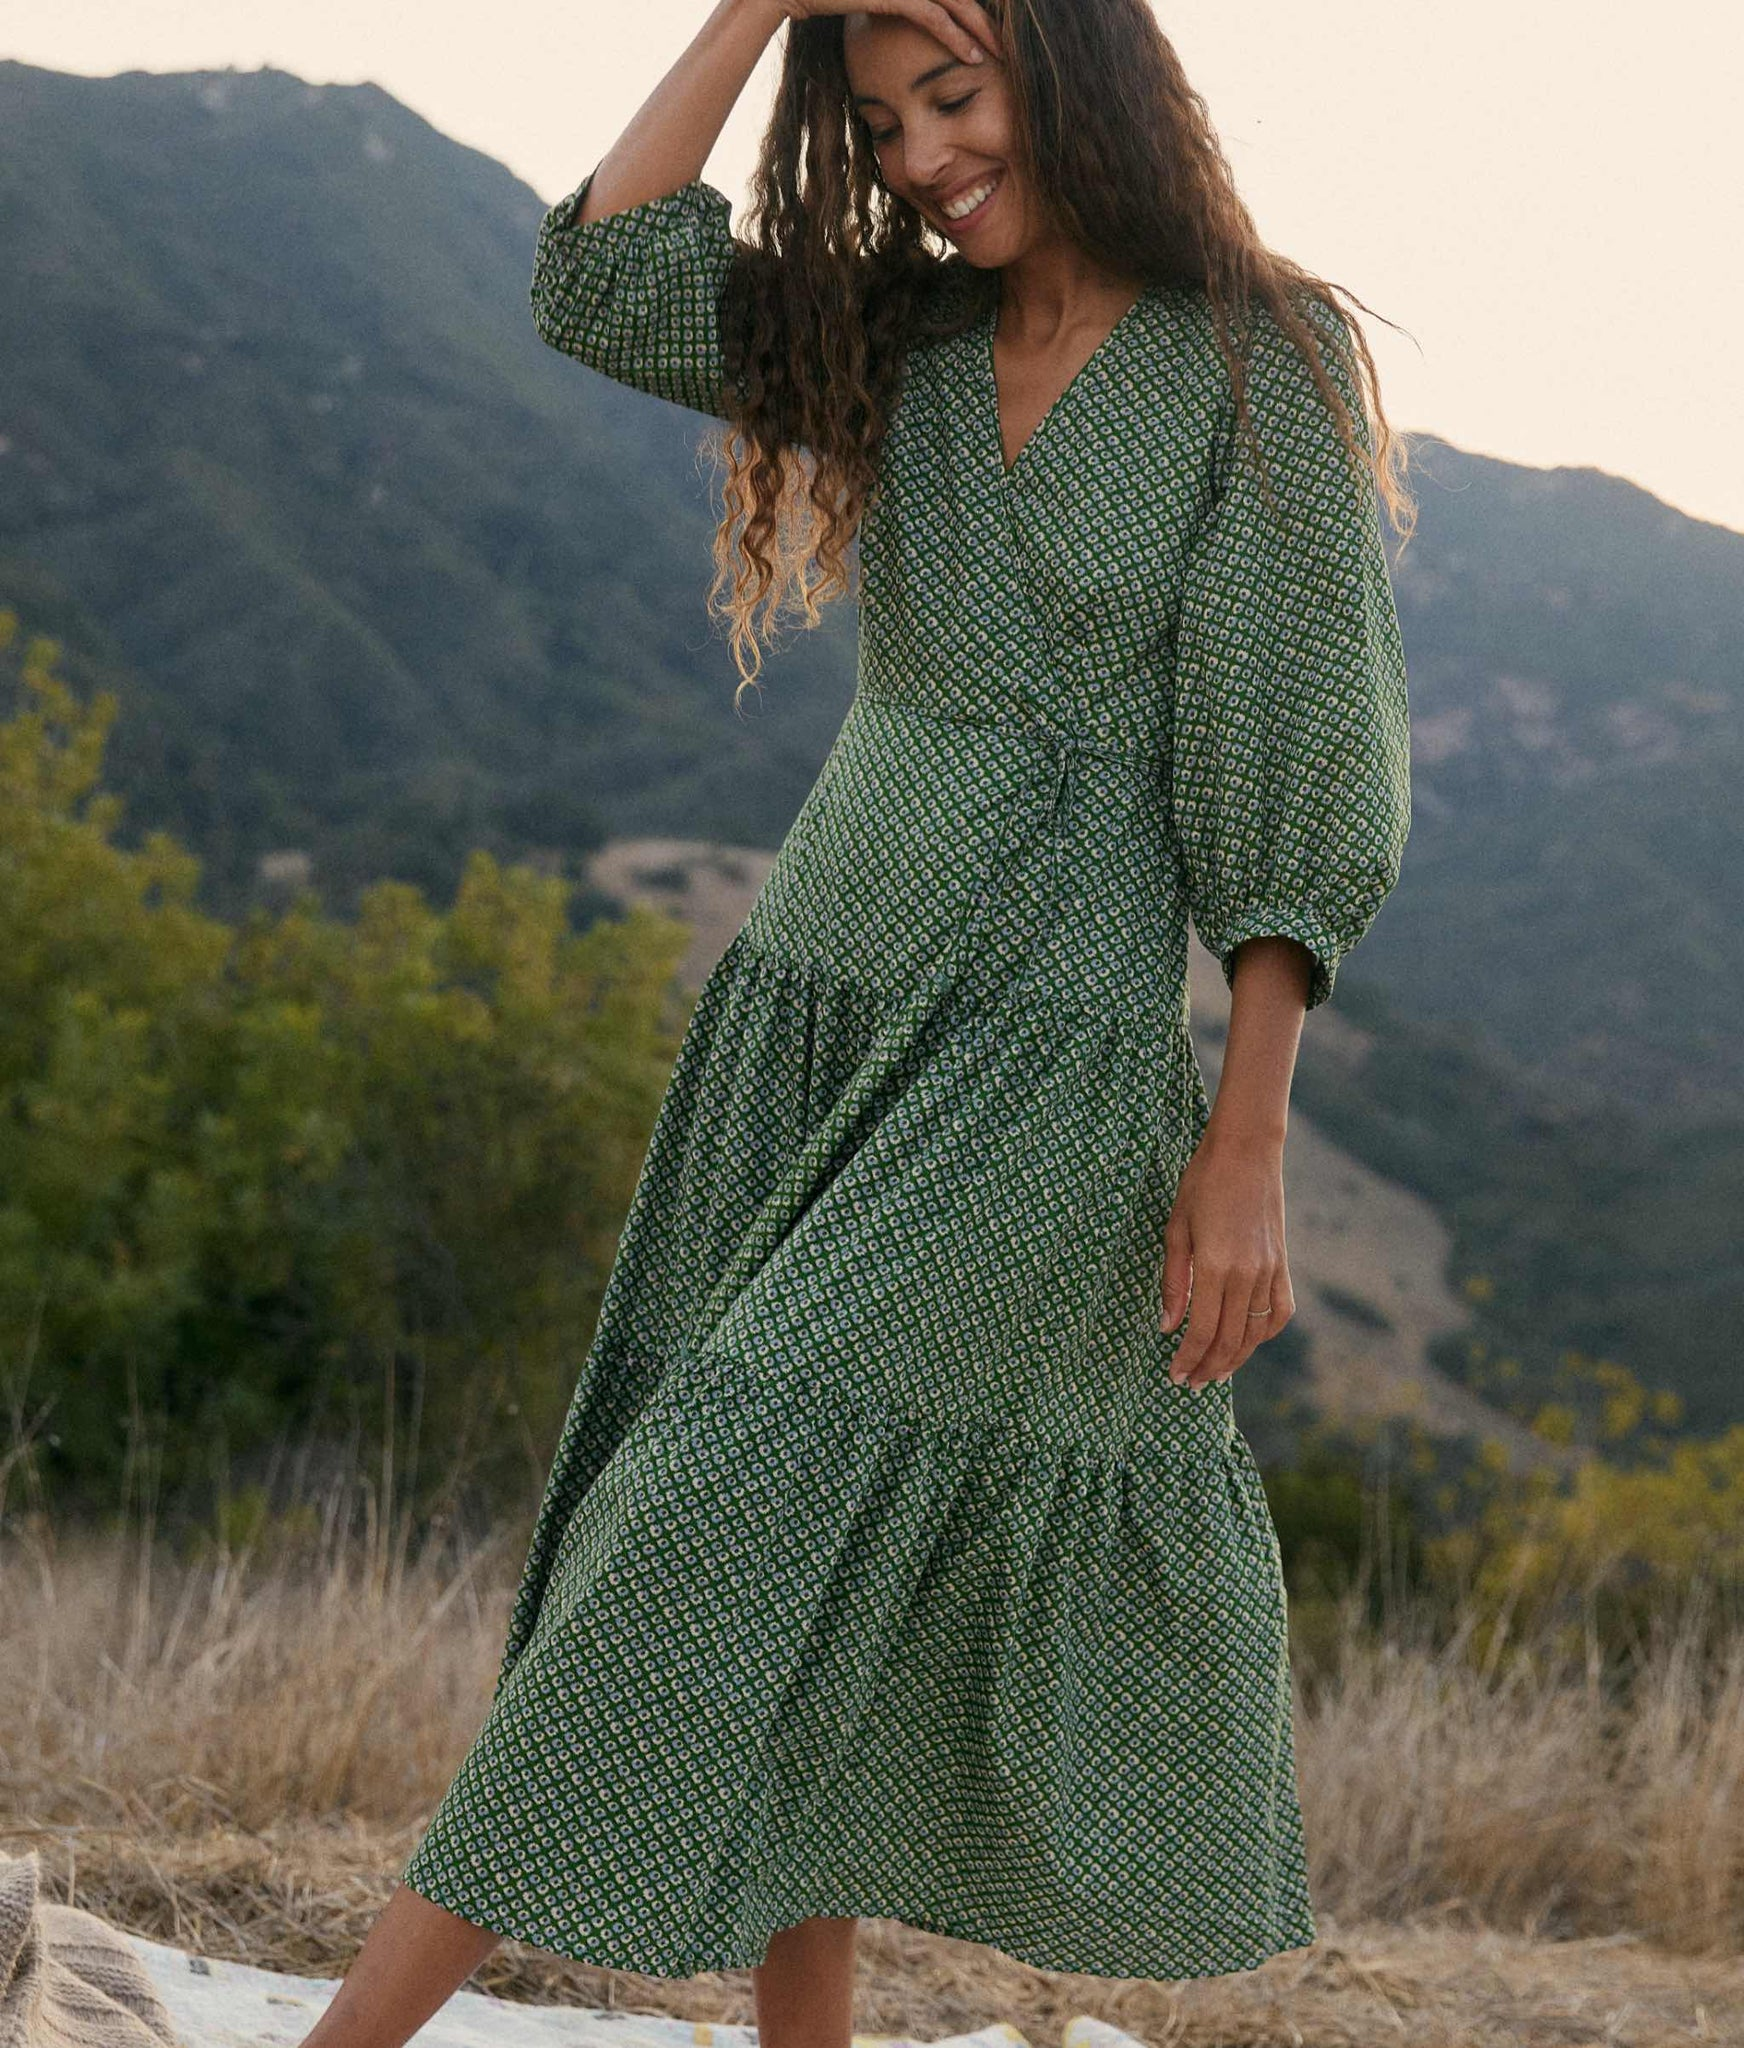 The Noah Dress | Linden Anemone Field